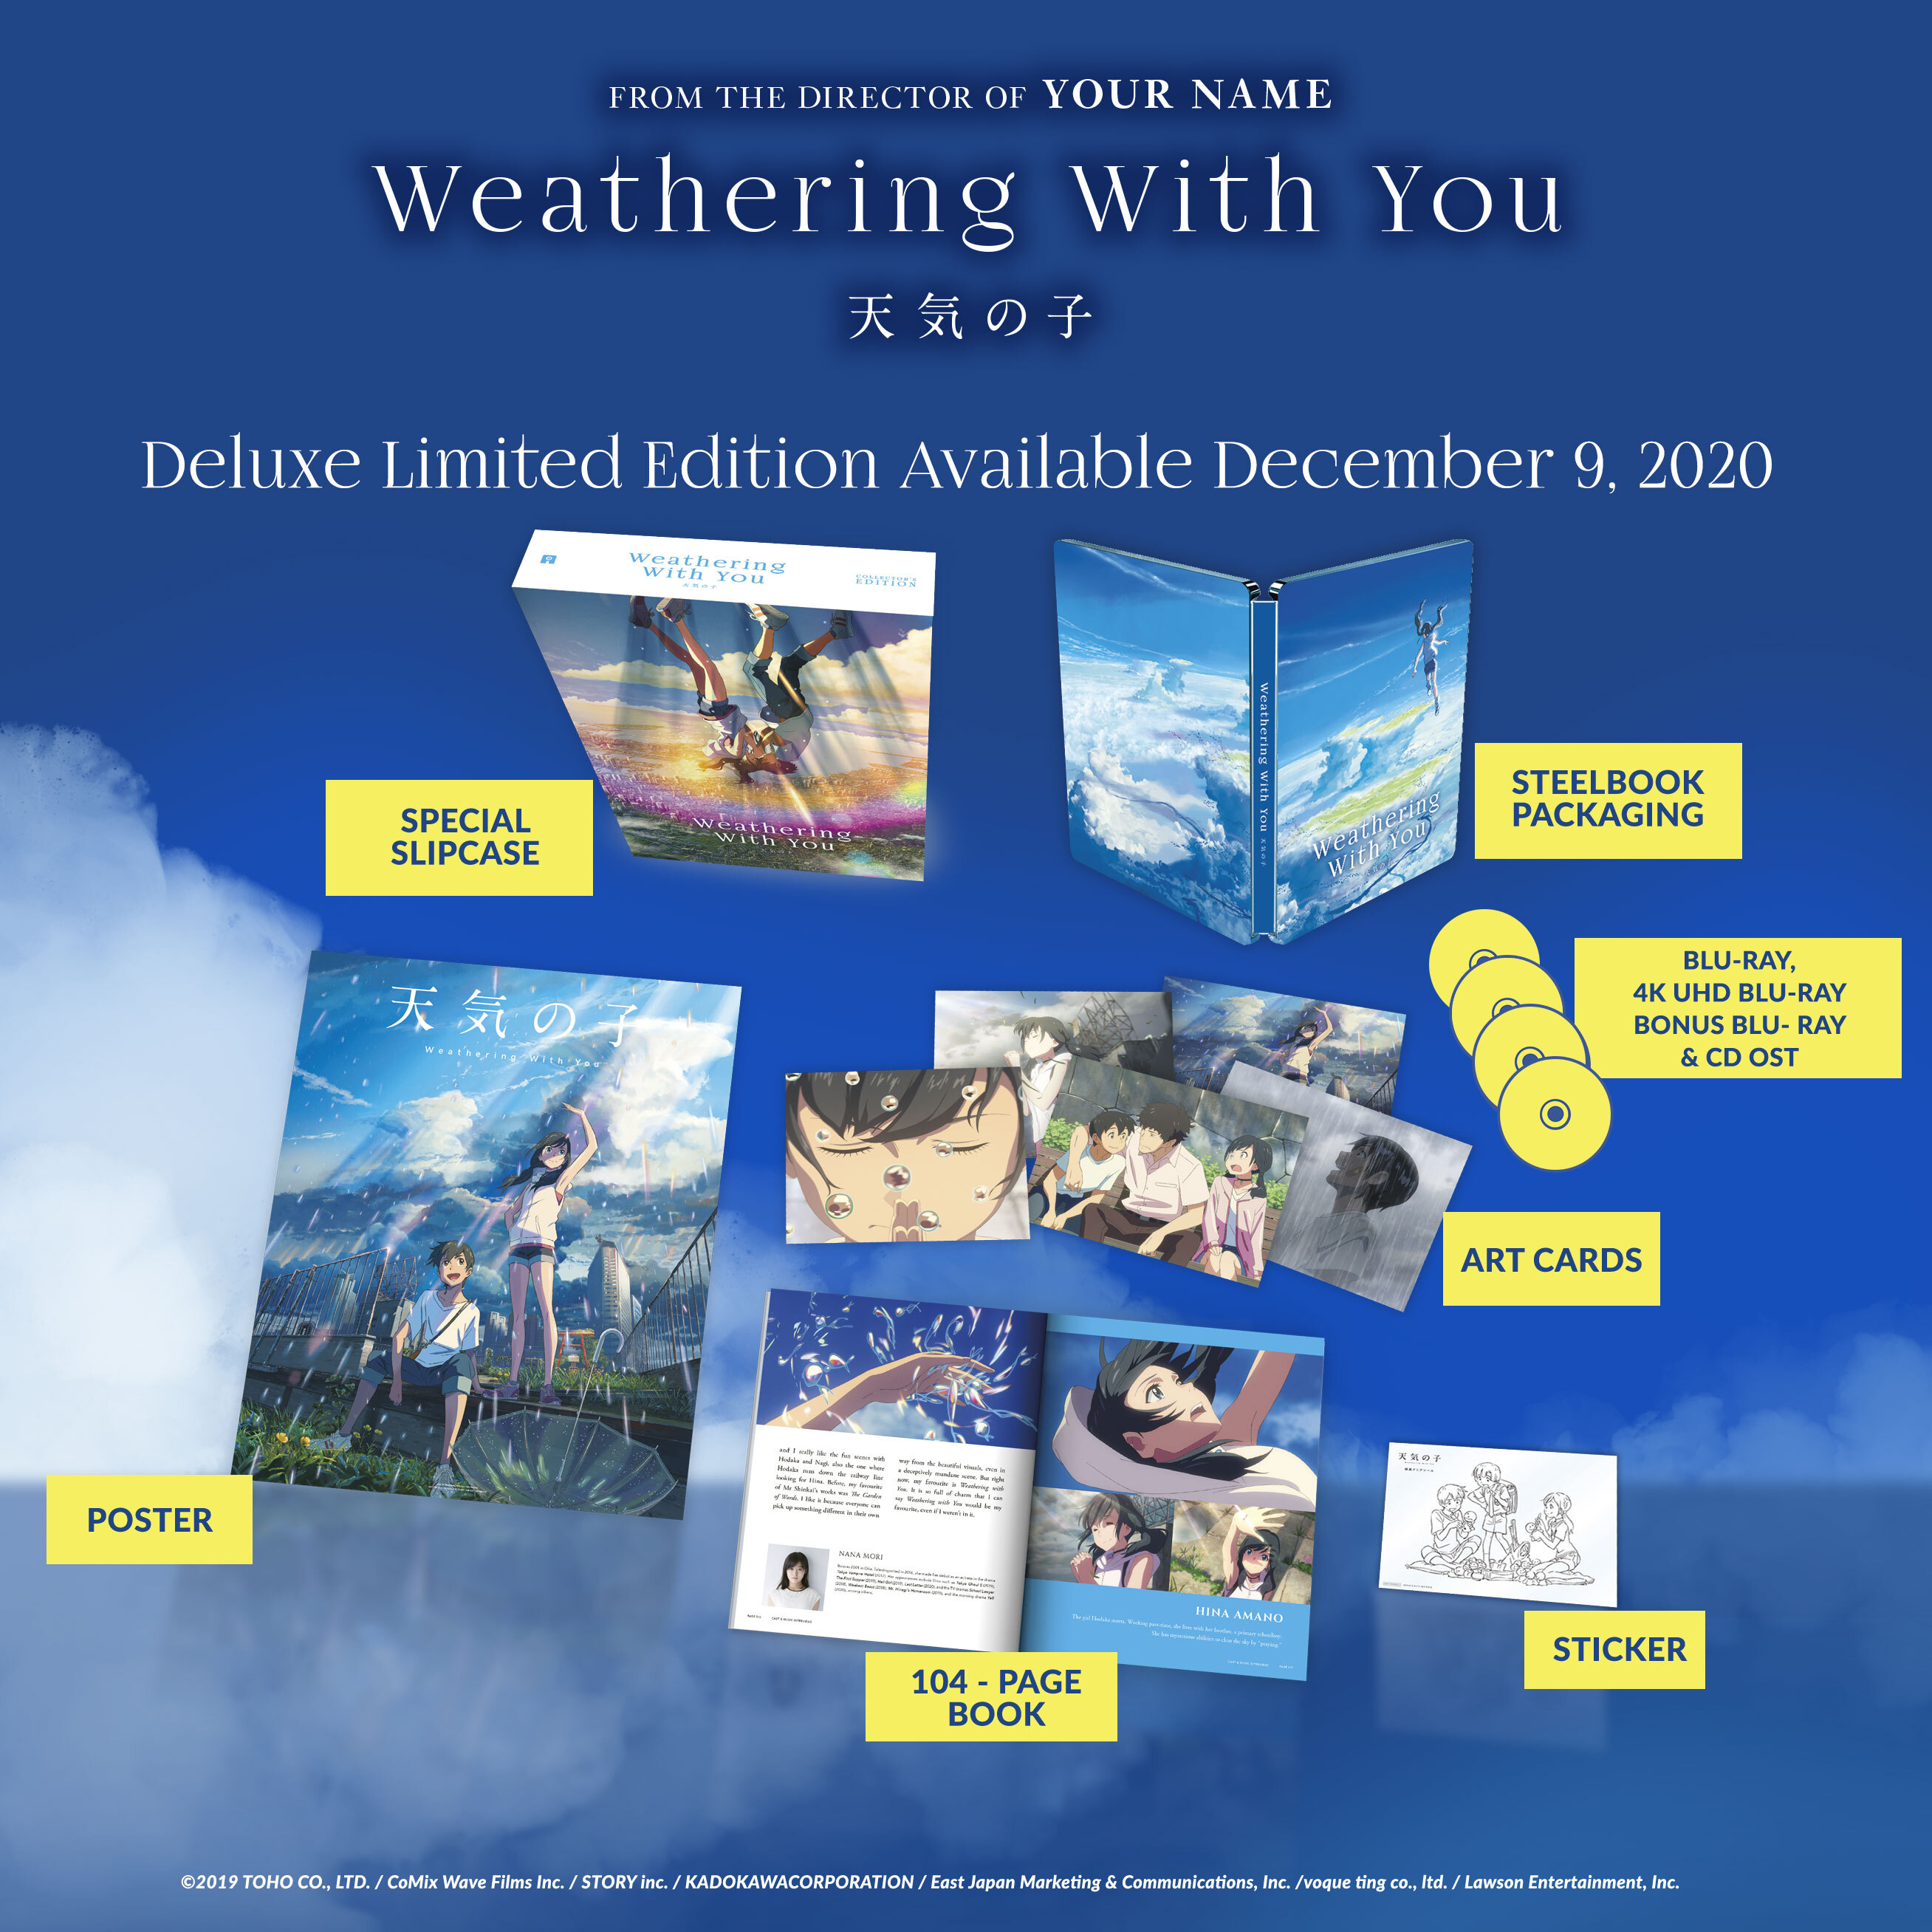 Weathering With You Available To Own Now On Disc And Digital